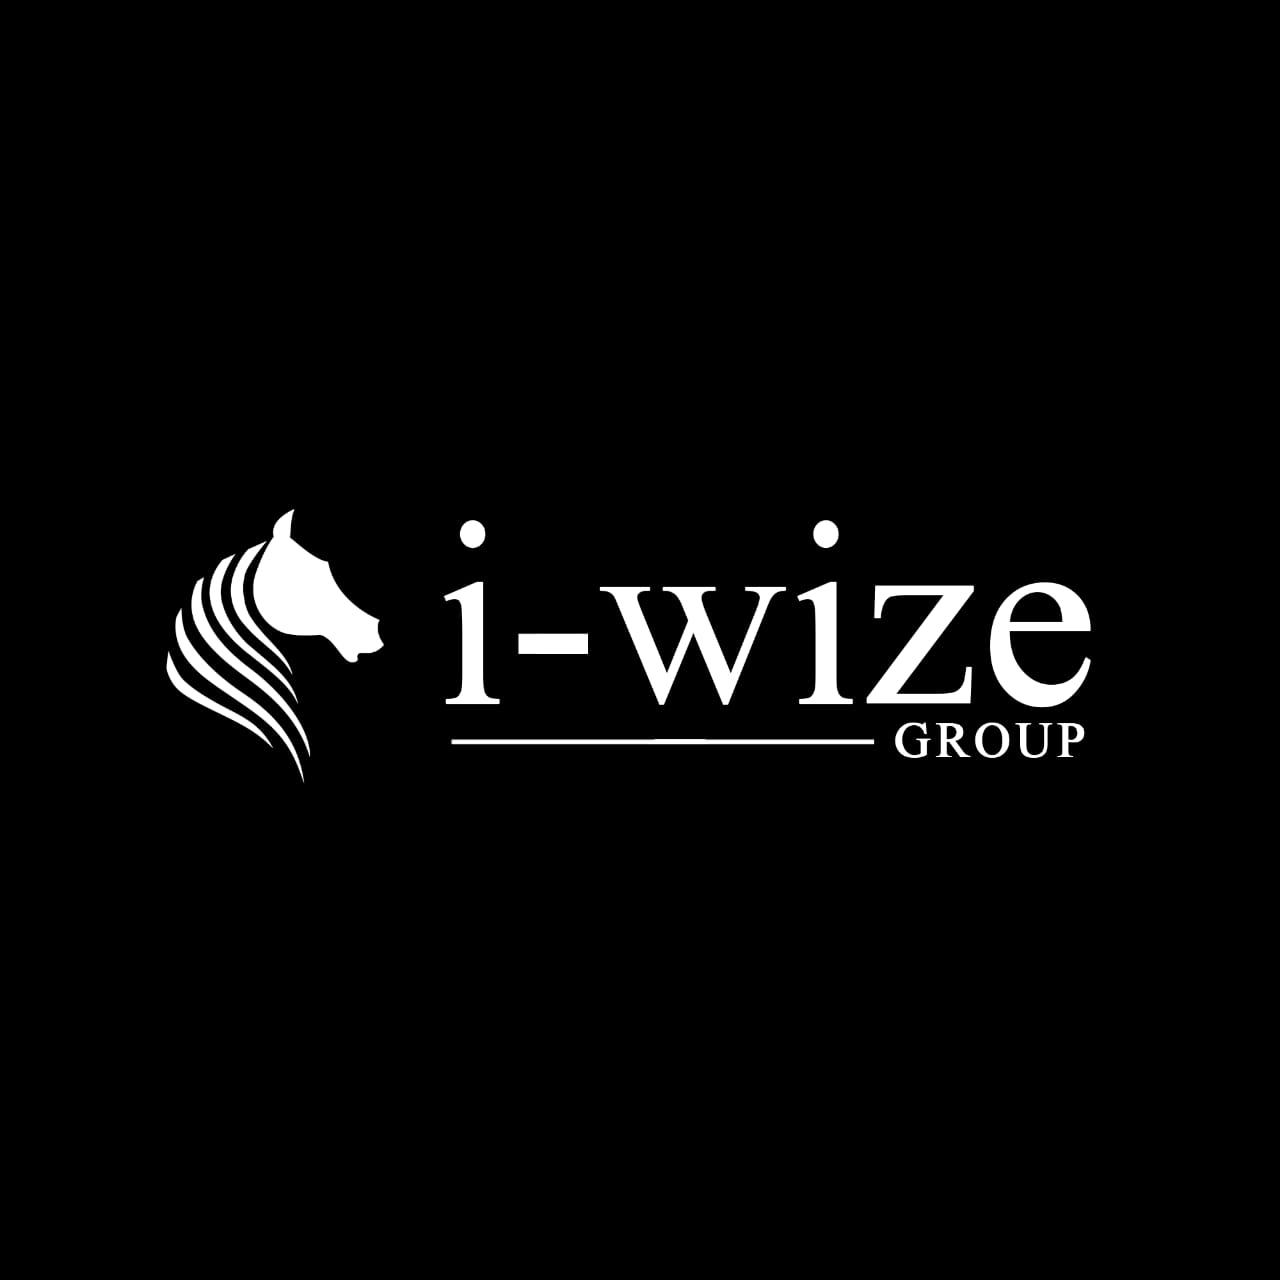 Streamline Savings Into Passive Incomes using this popular mobile wallet: i-wize group